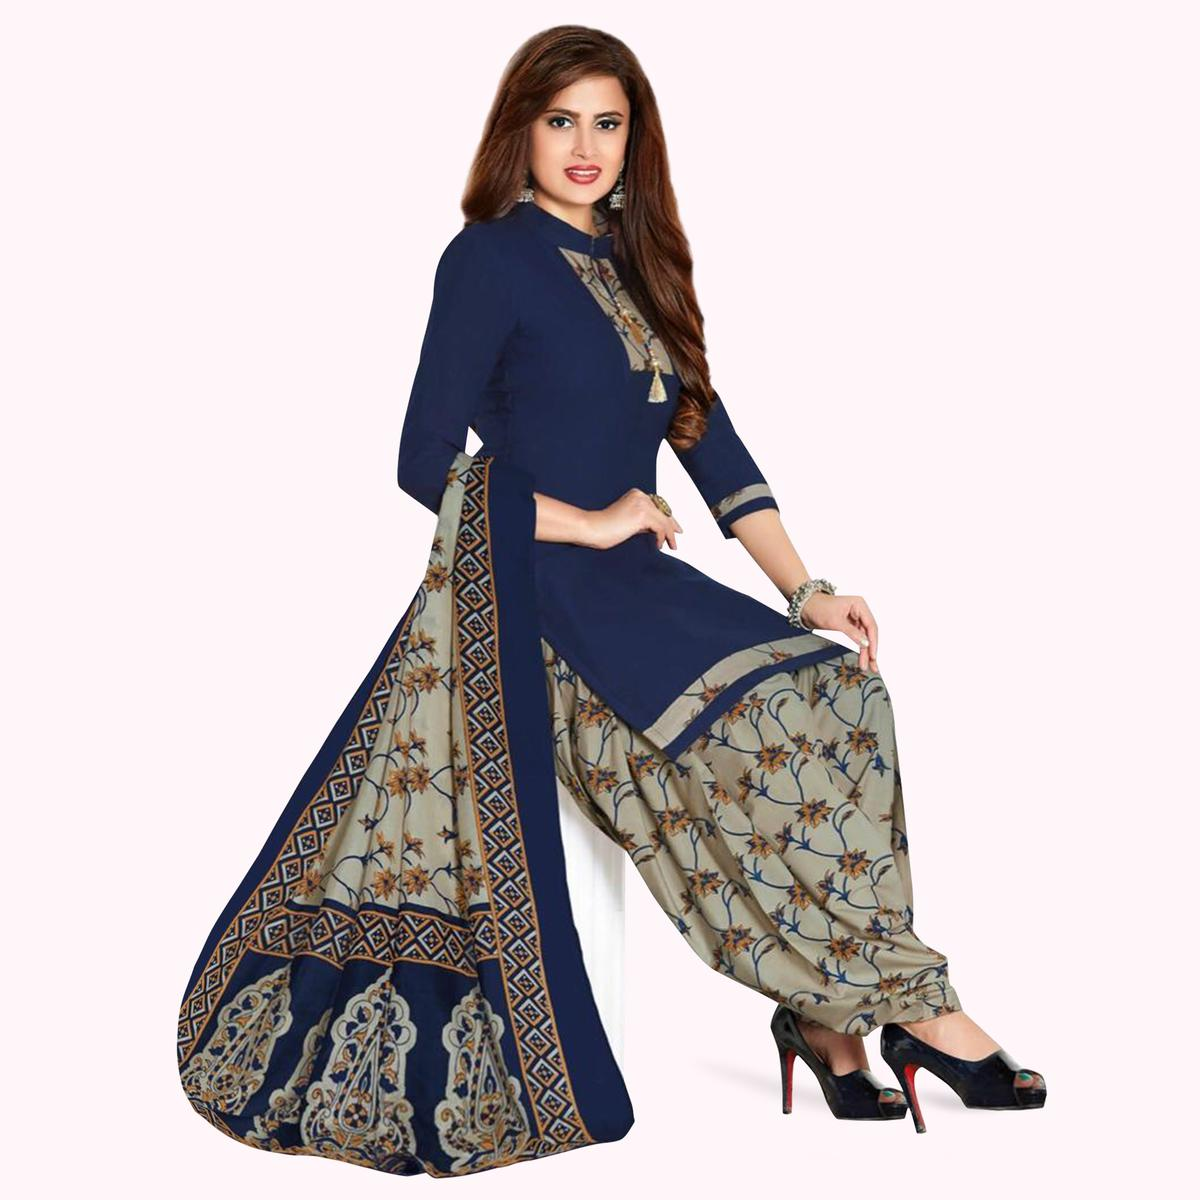 Attractive Navy Blue Colored Casual Printed Crepe Patiala Suit